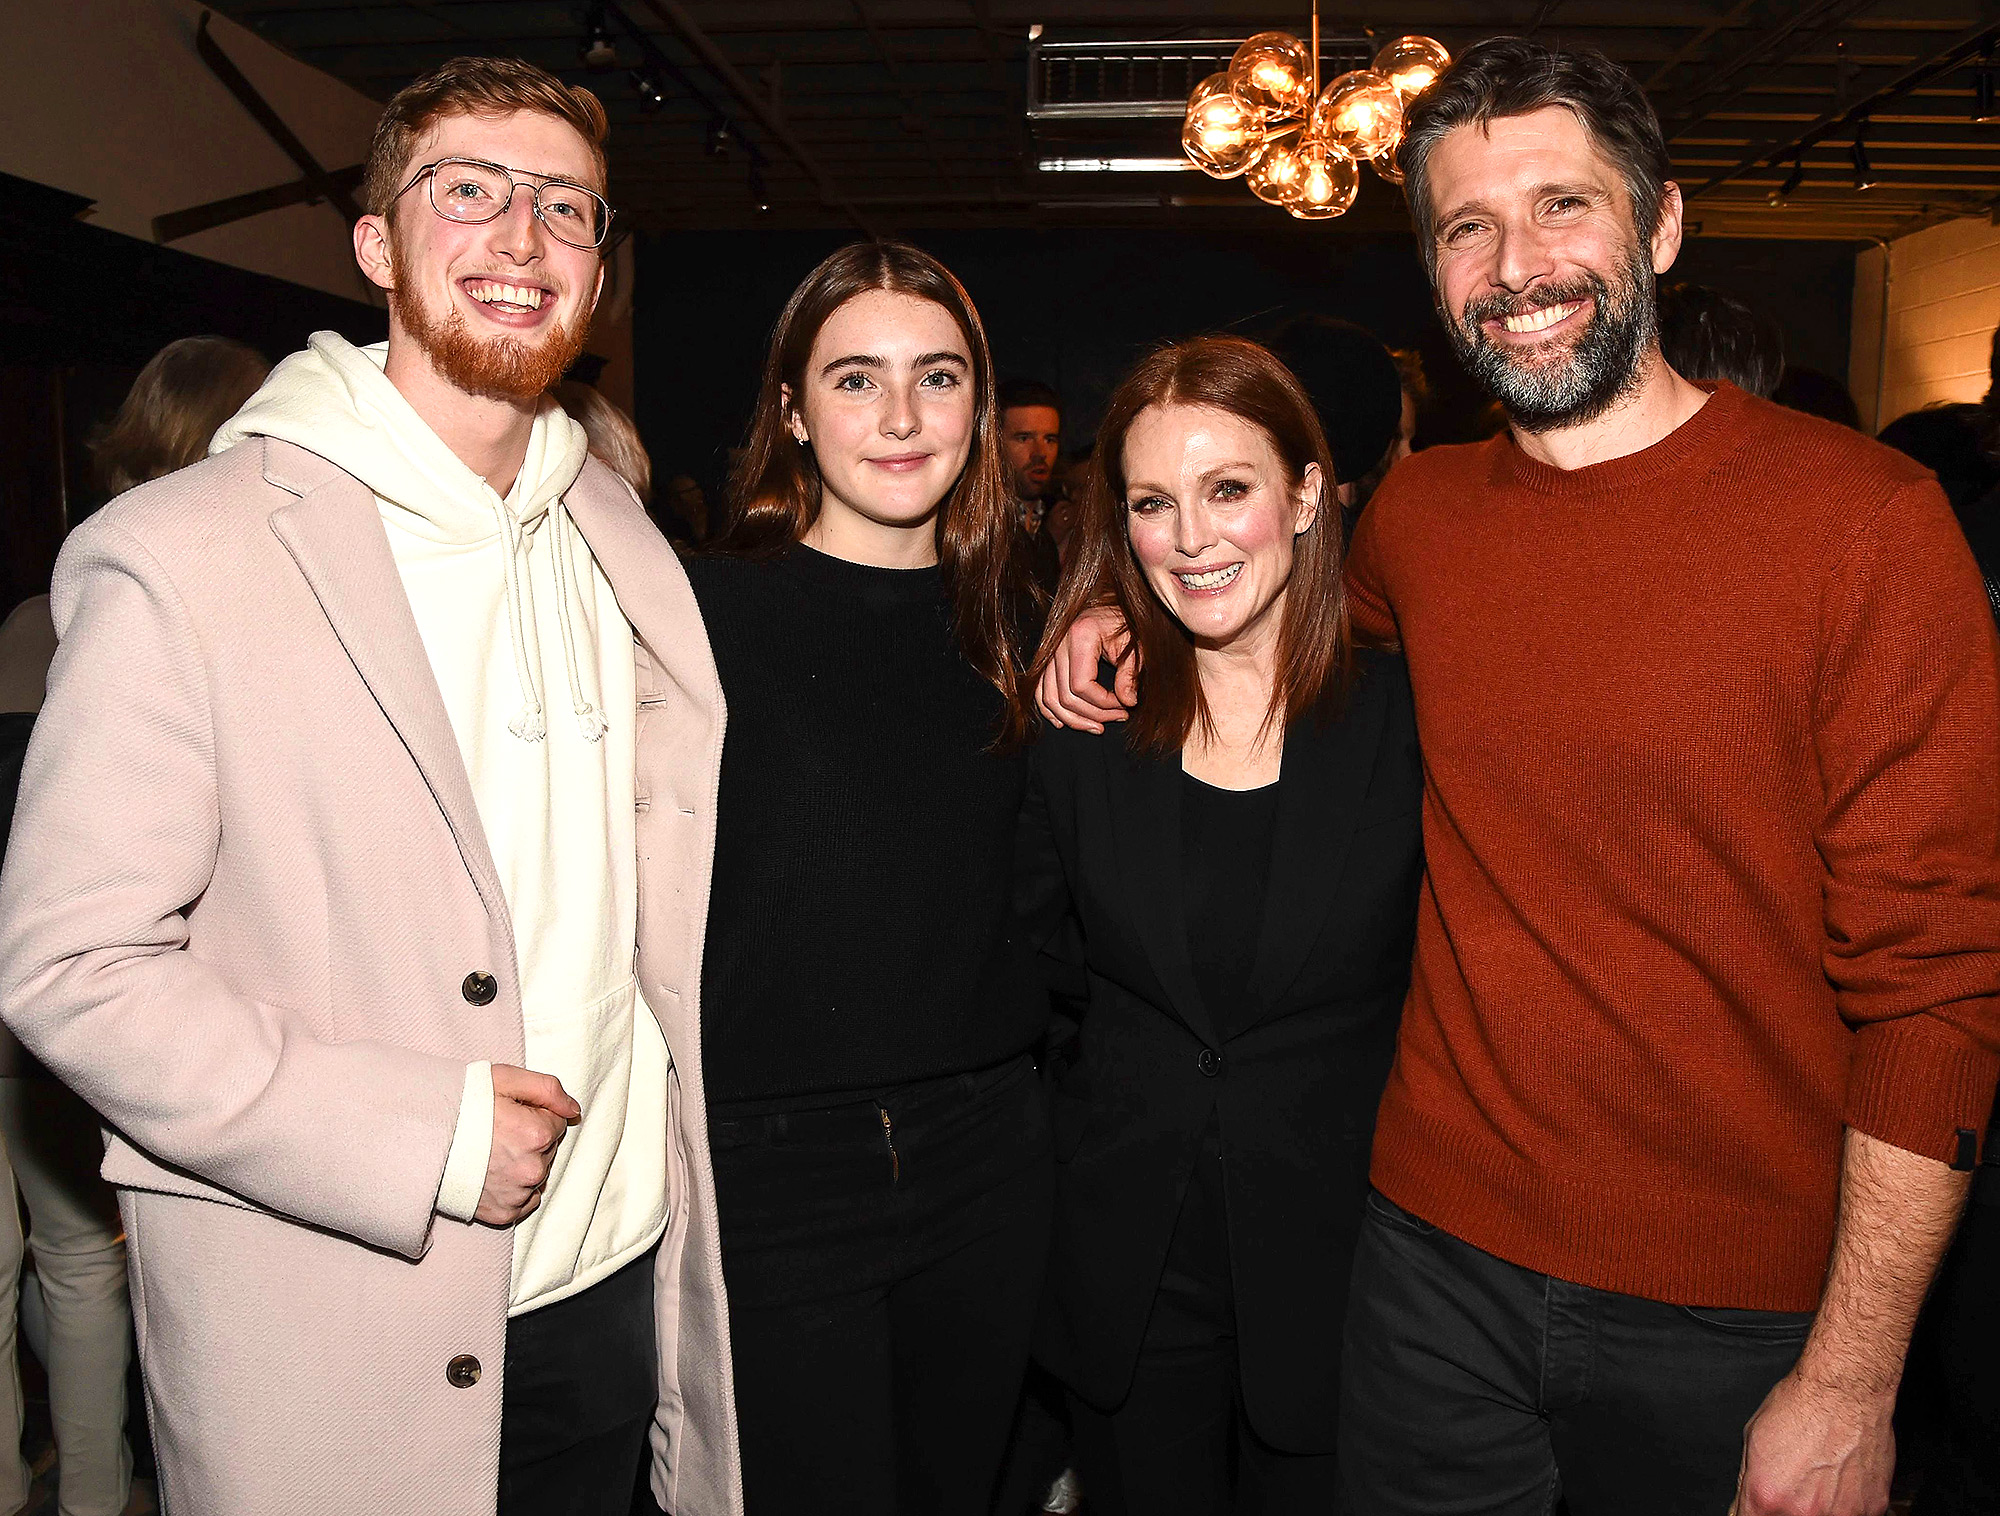 After The Wedding Cast Party at Chase Sapphire on Main, Park City, USA - 24 Jan 2019